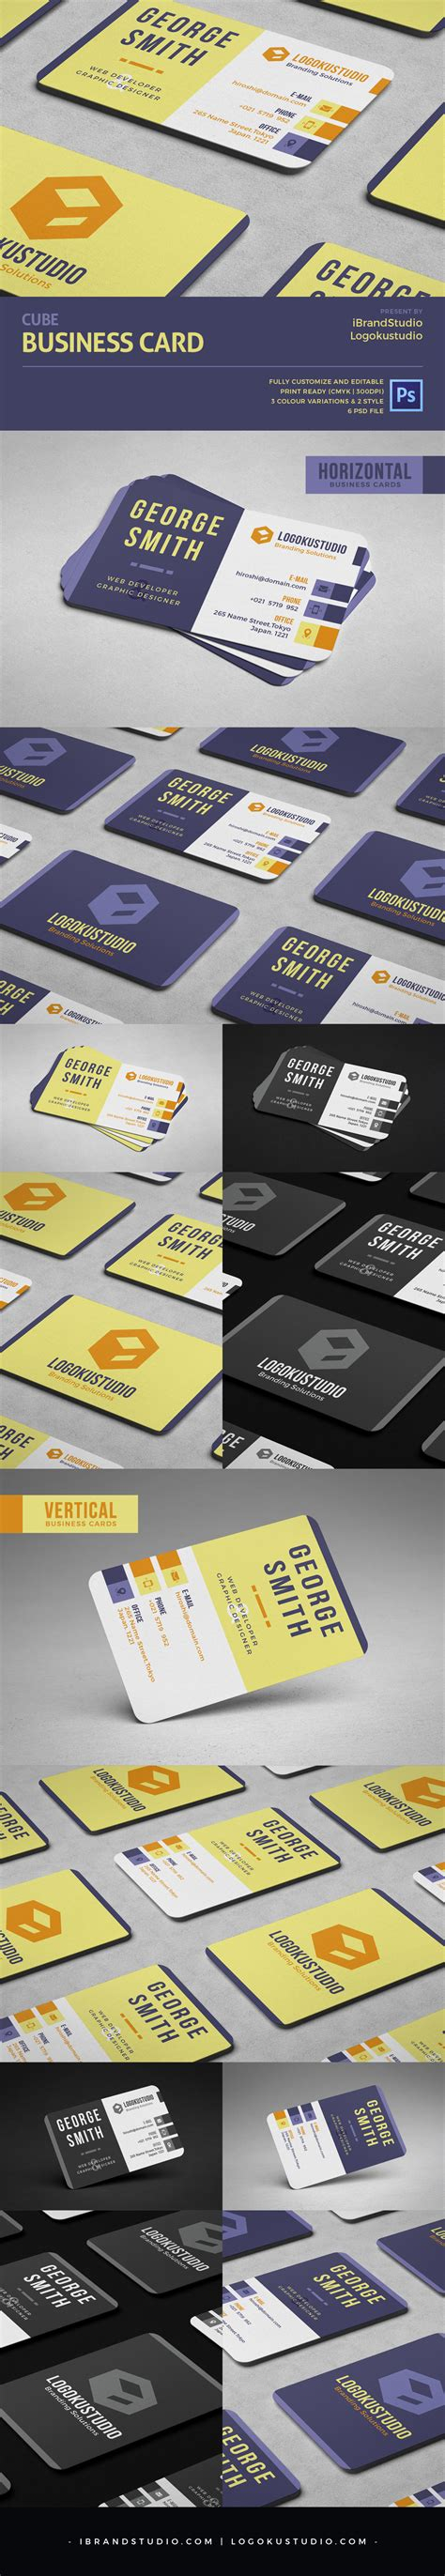 Cube Business Card Template by Free Cube Business Card Template 2 Styles 3 Colors Psd